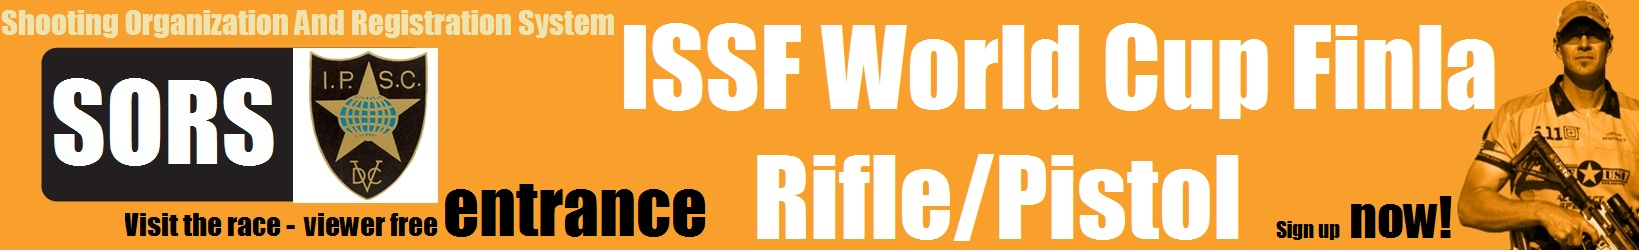 ISSF World Cup Finla Rifle/Pistol